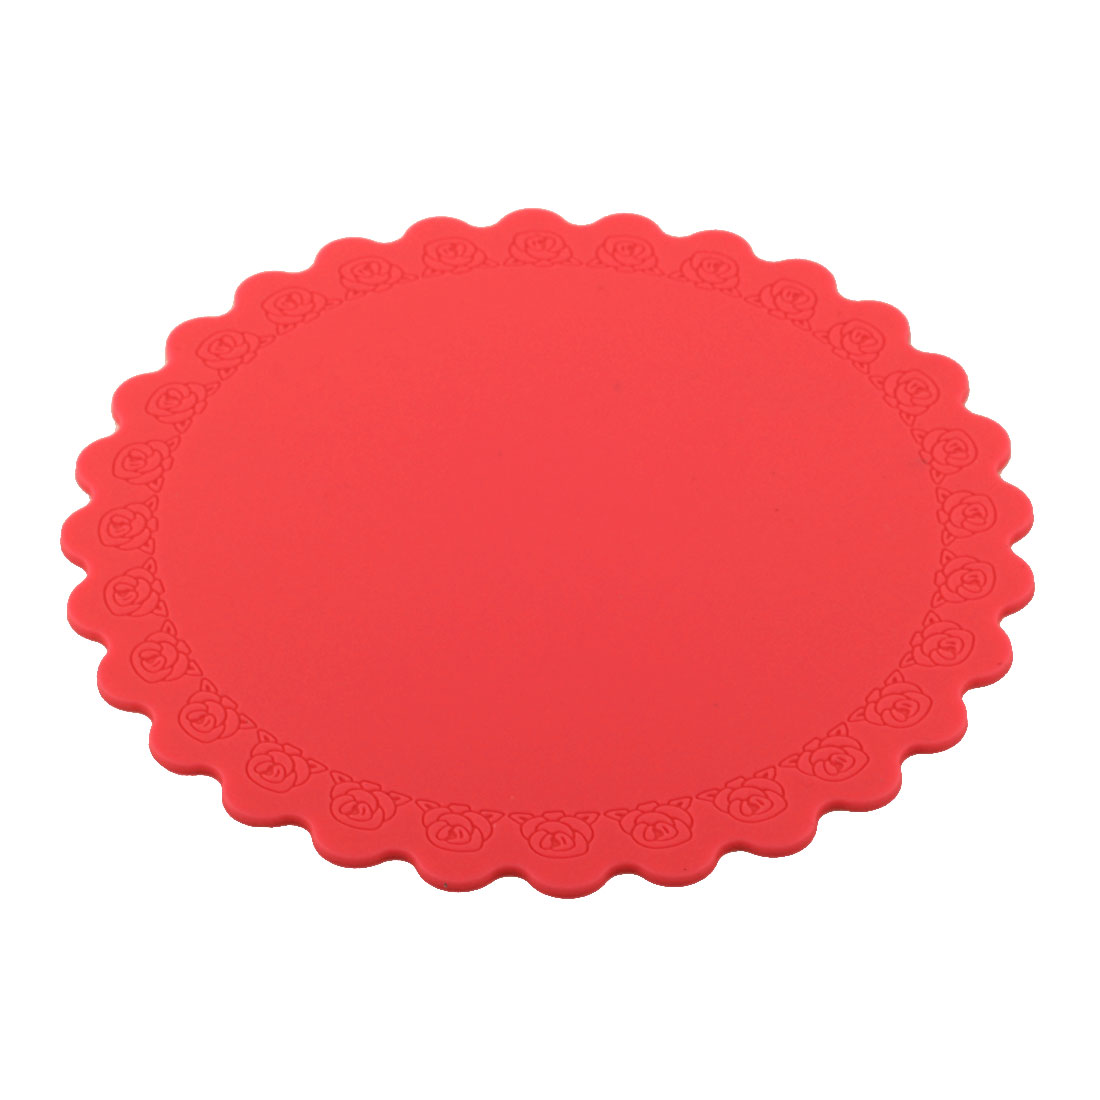 Silicone Rose Carven Table Heat Resistant Mat Cup Coaster Cushion Placemat Pad Red